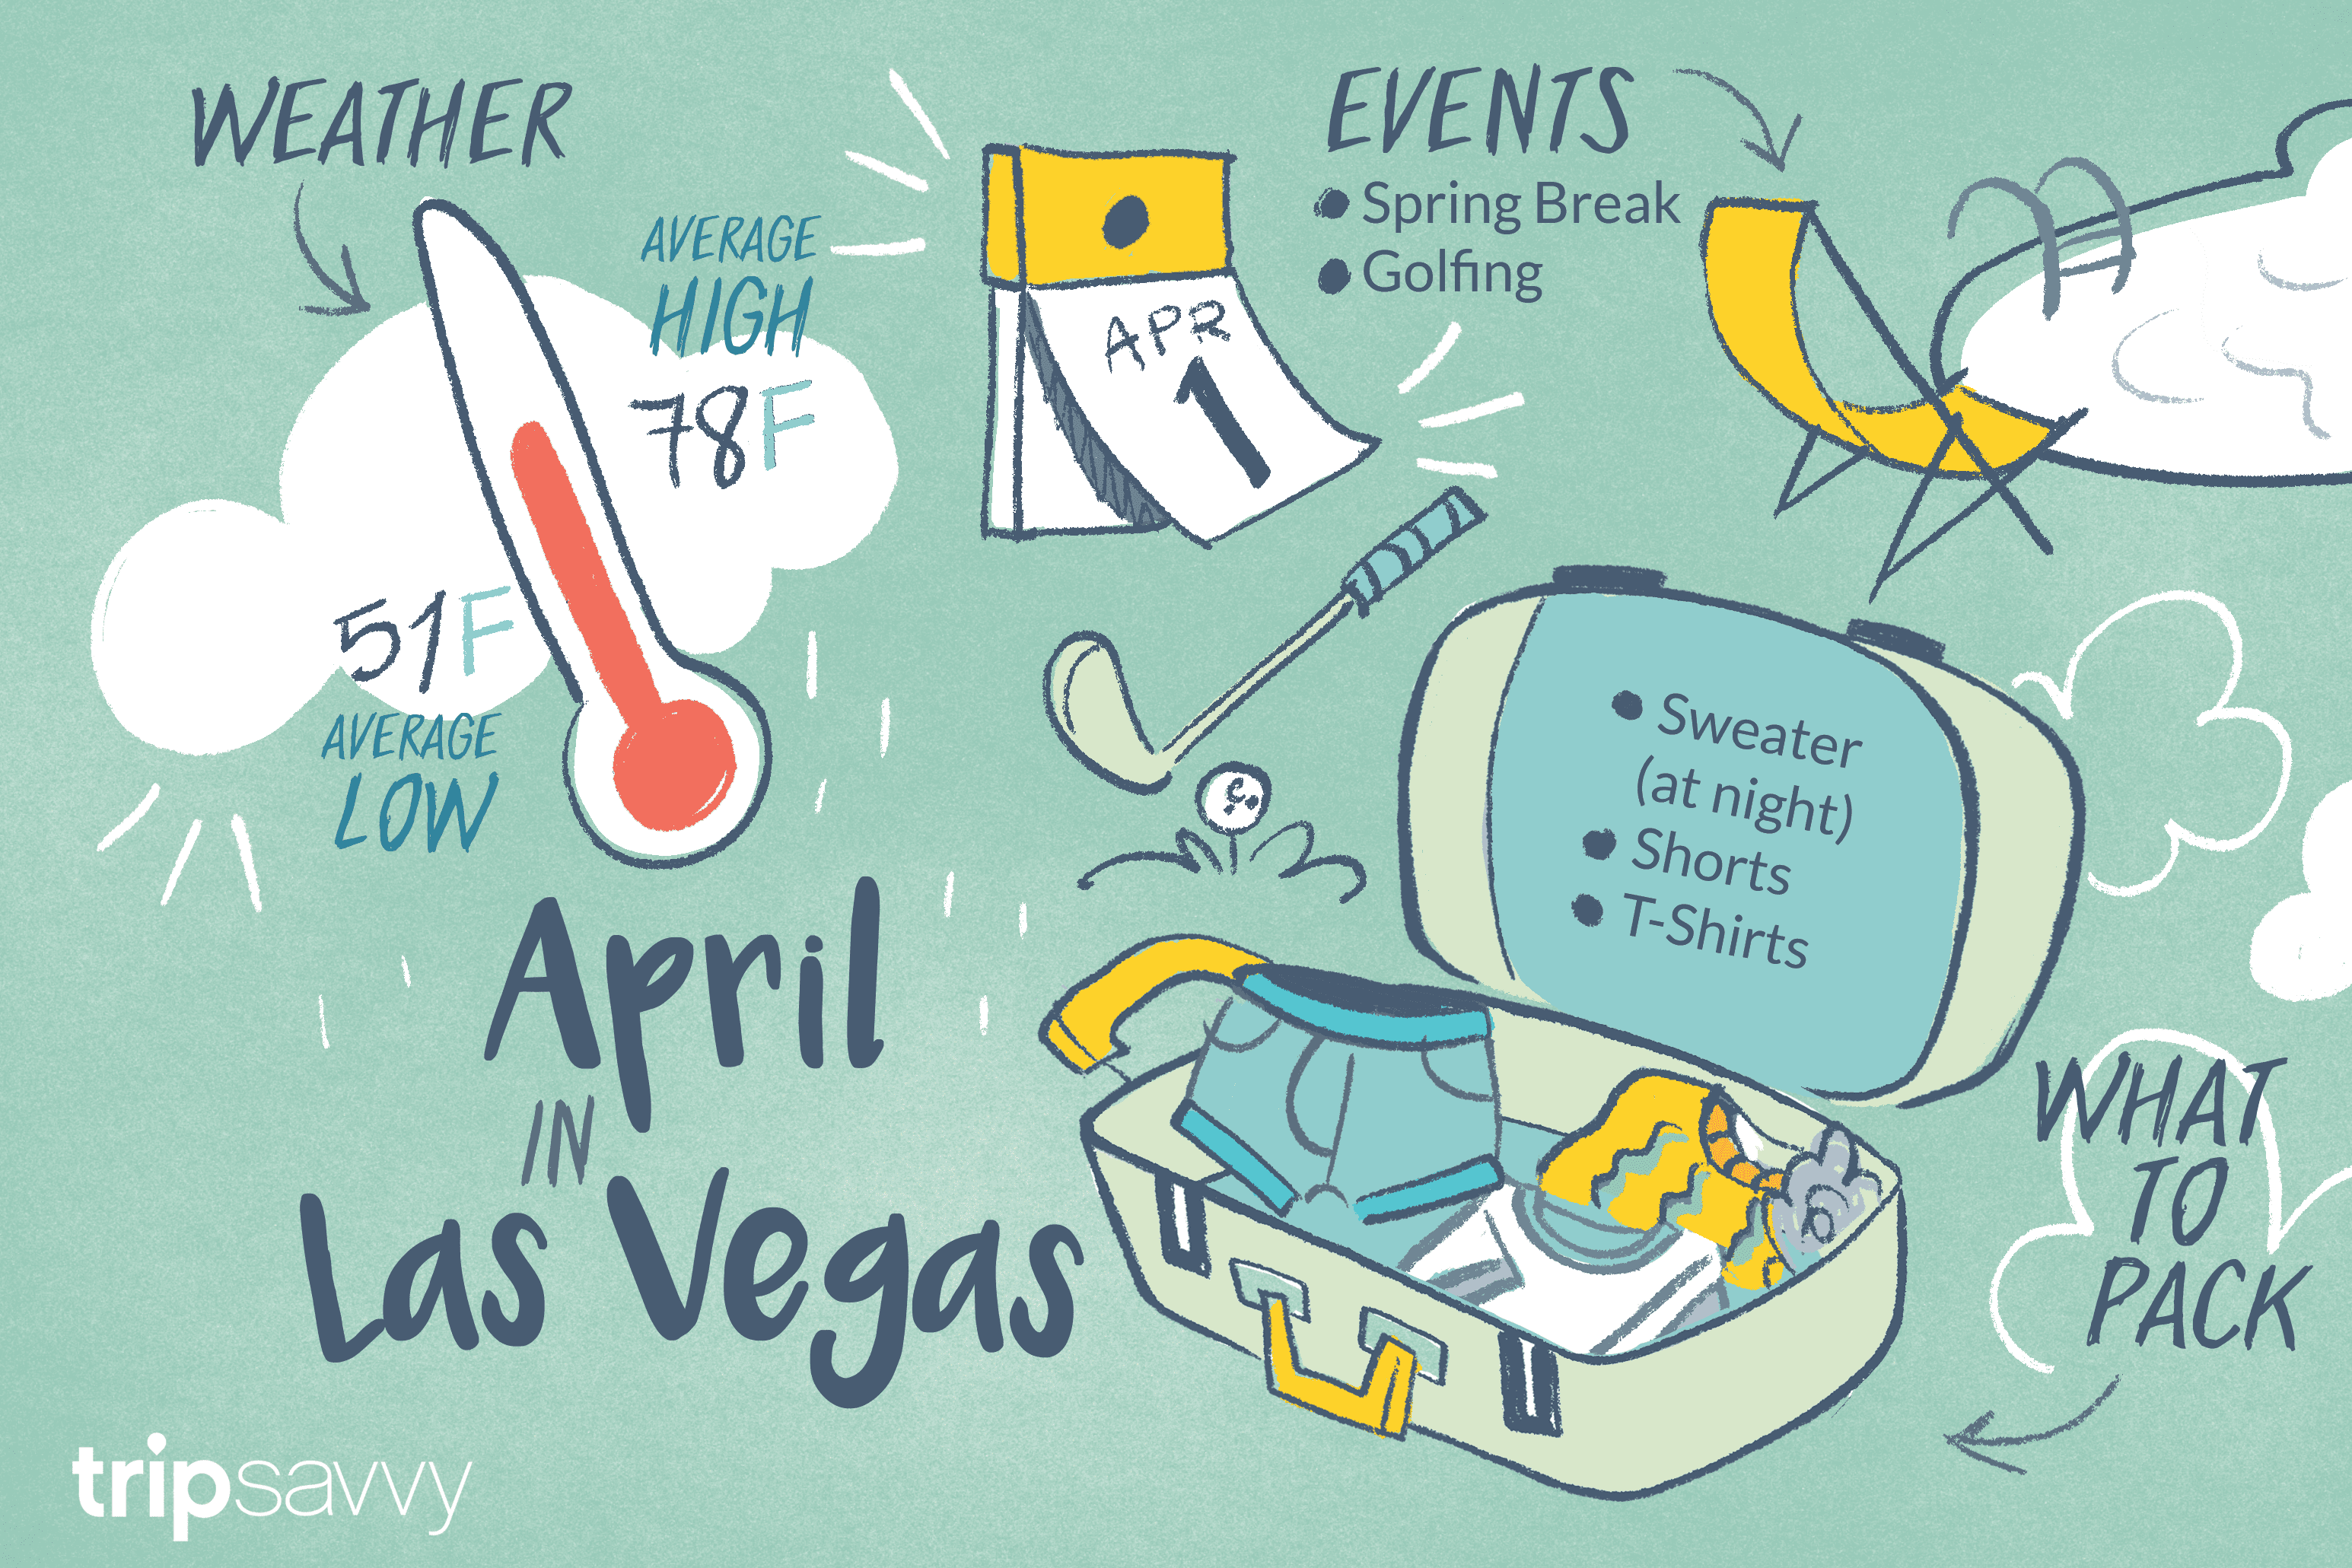 April in Las Vegas: Weather and Event Guide